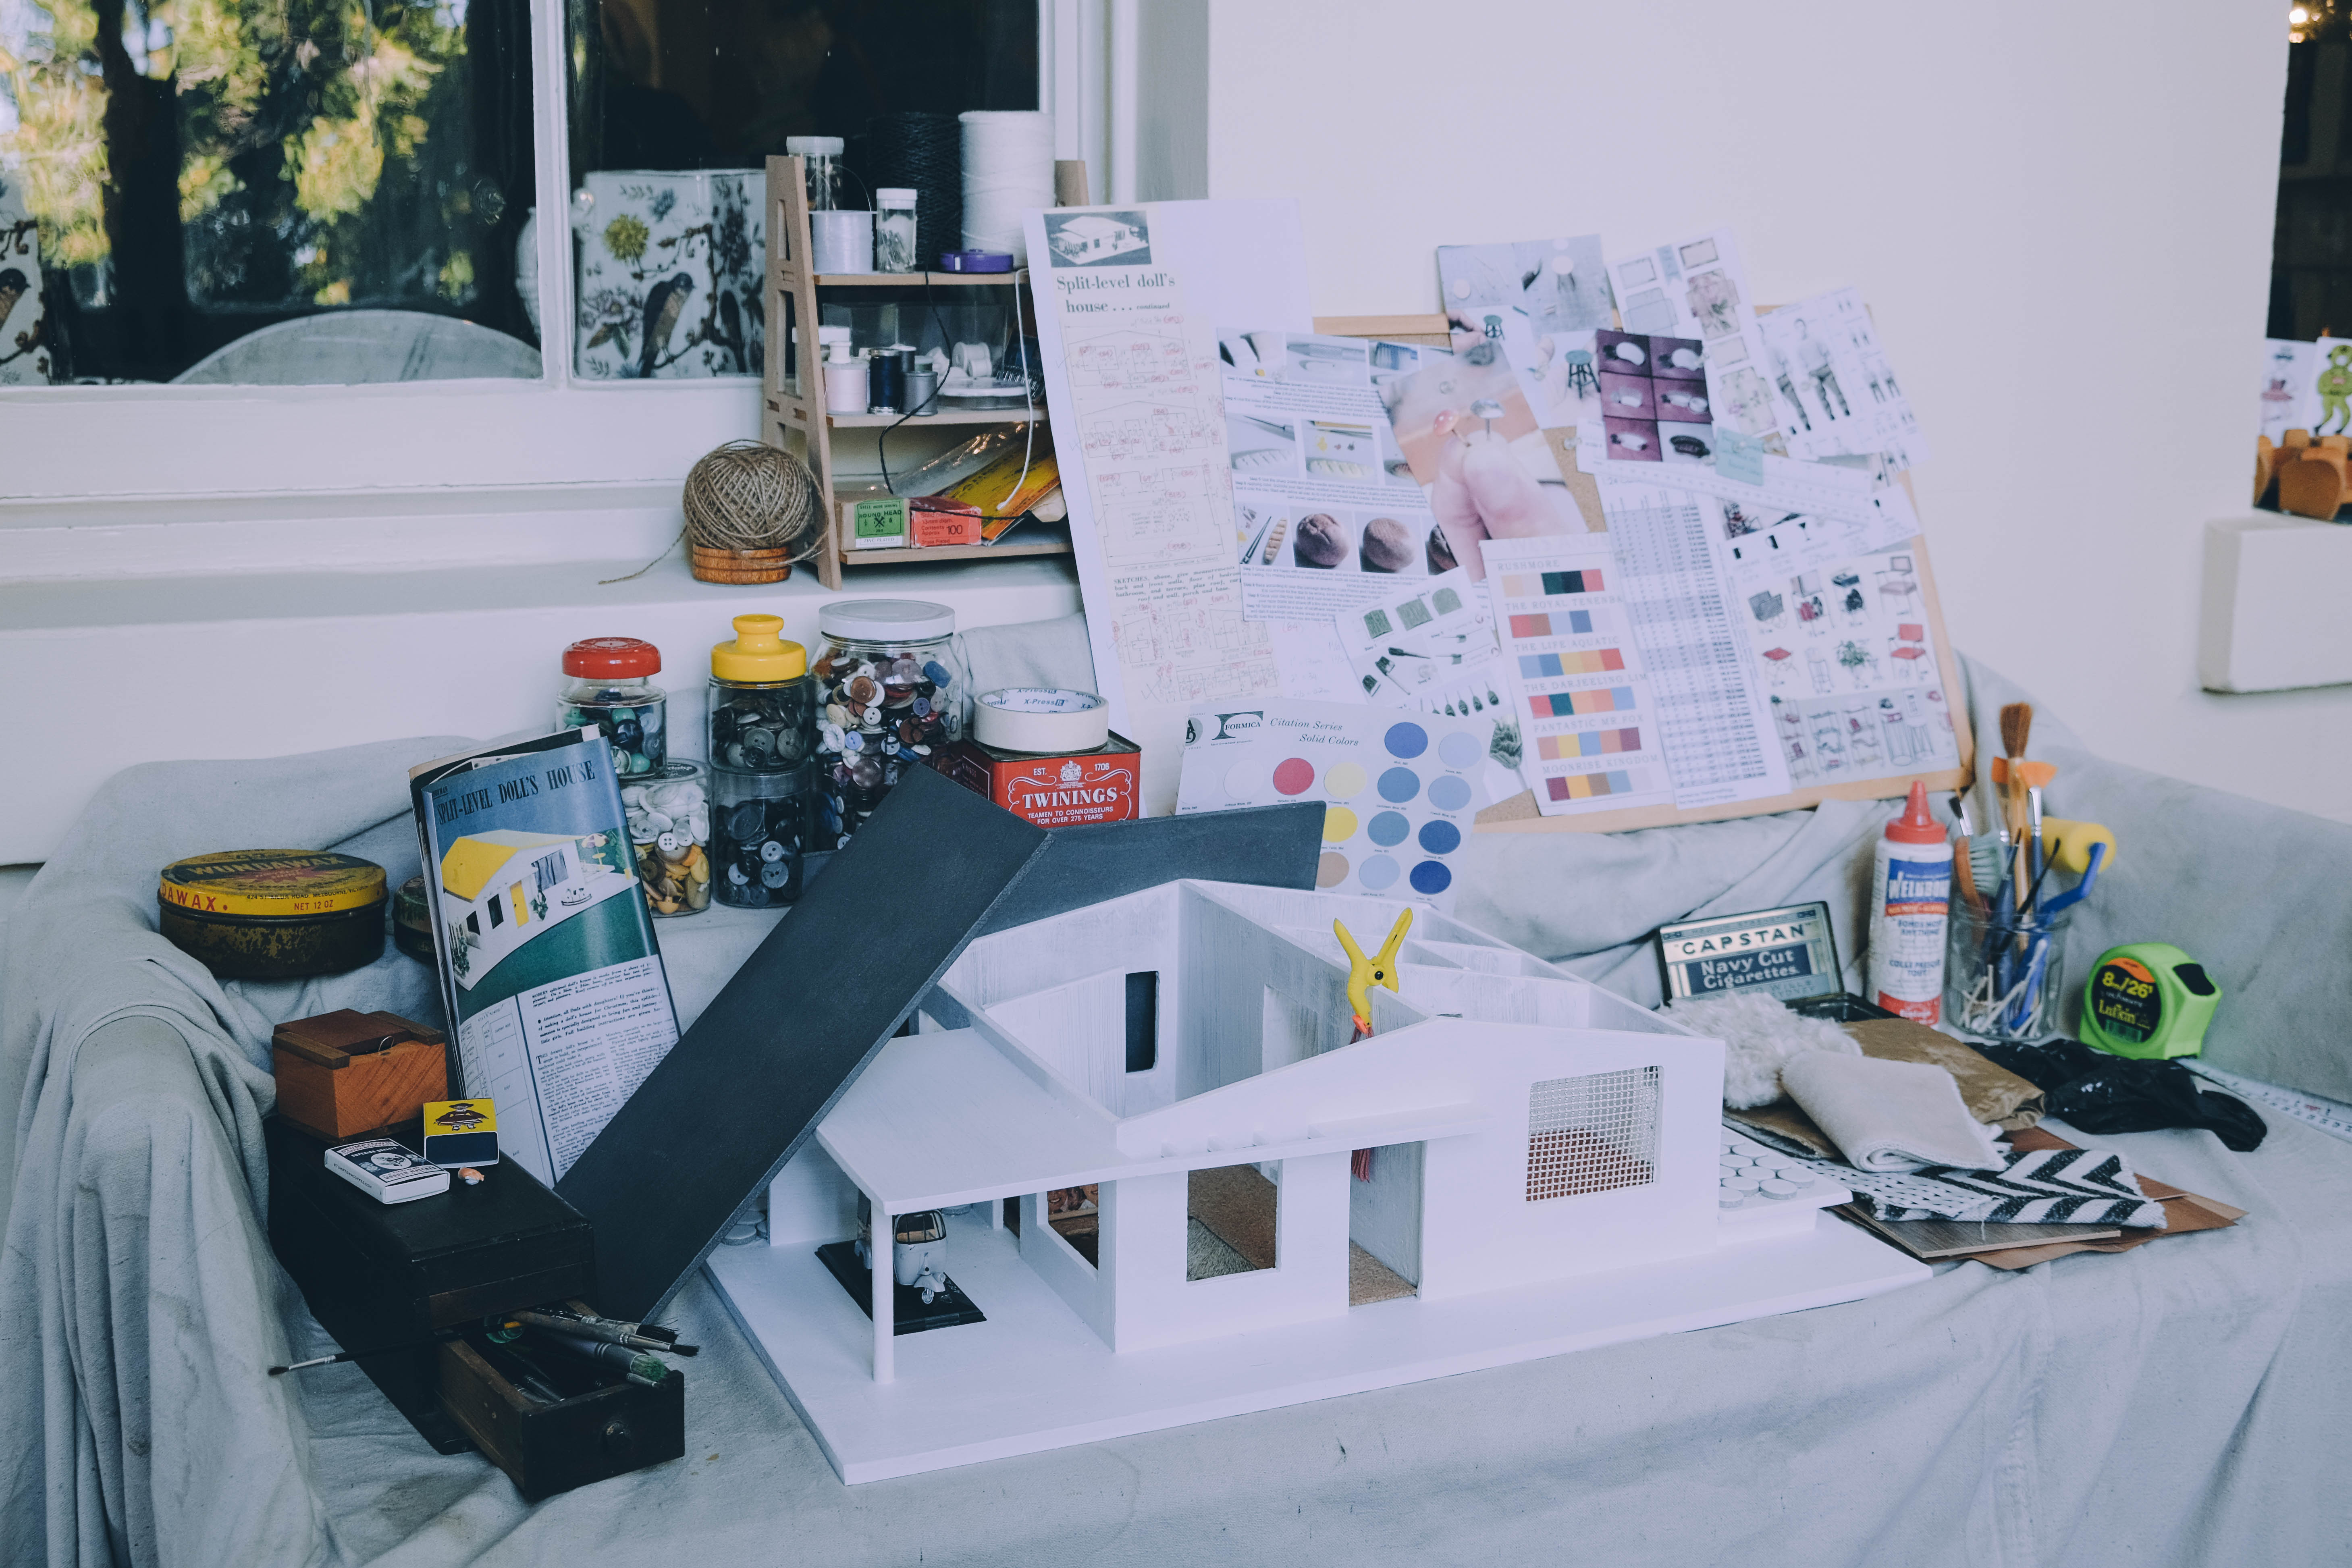 Doll house in construction on work bench